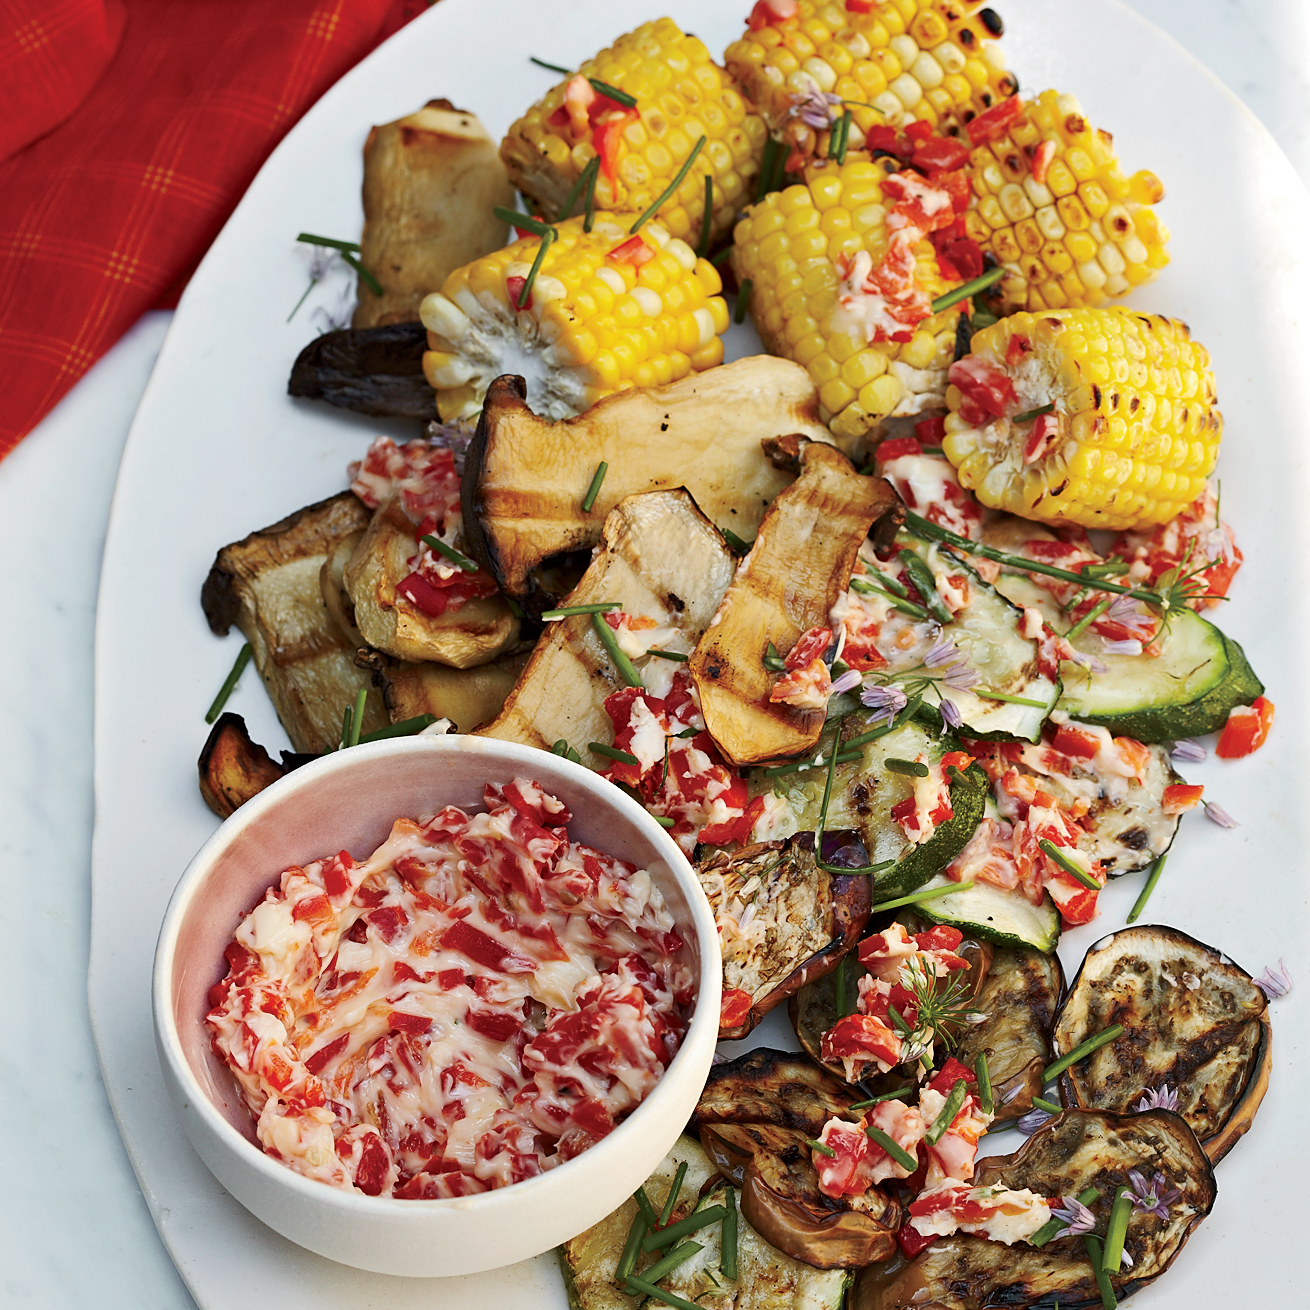 Grilled Vegetables with Roasted-Chile Butter